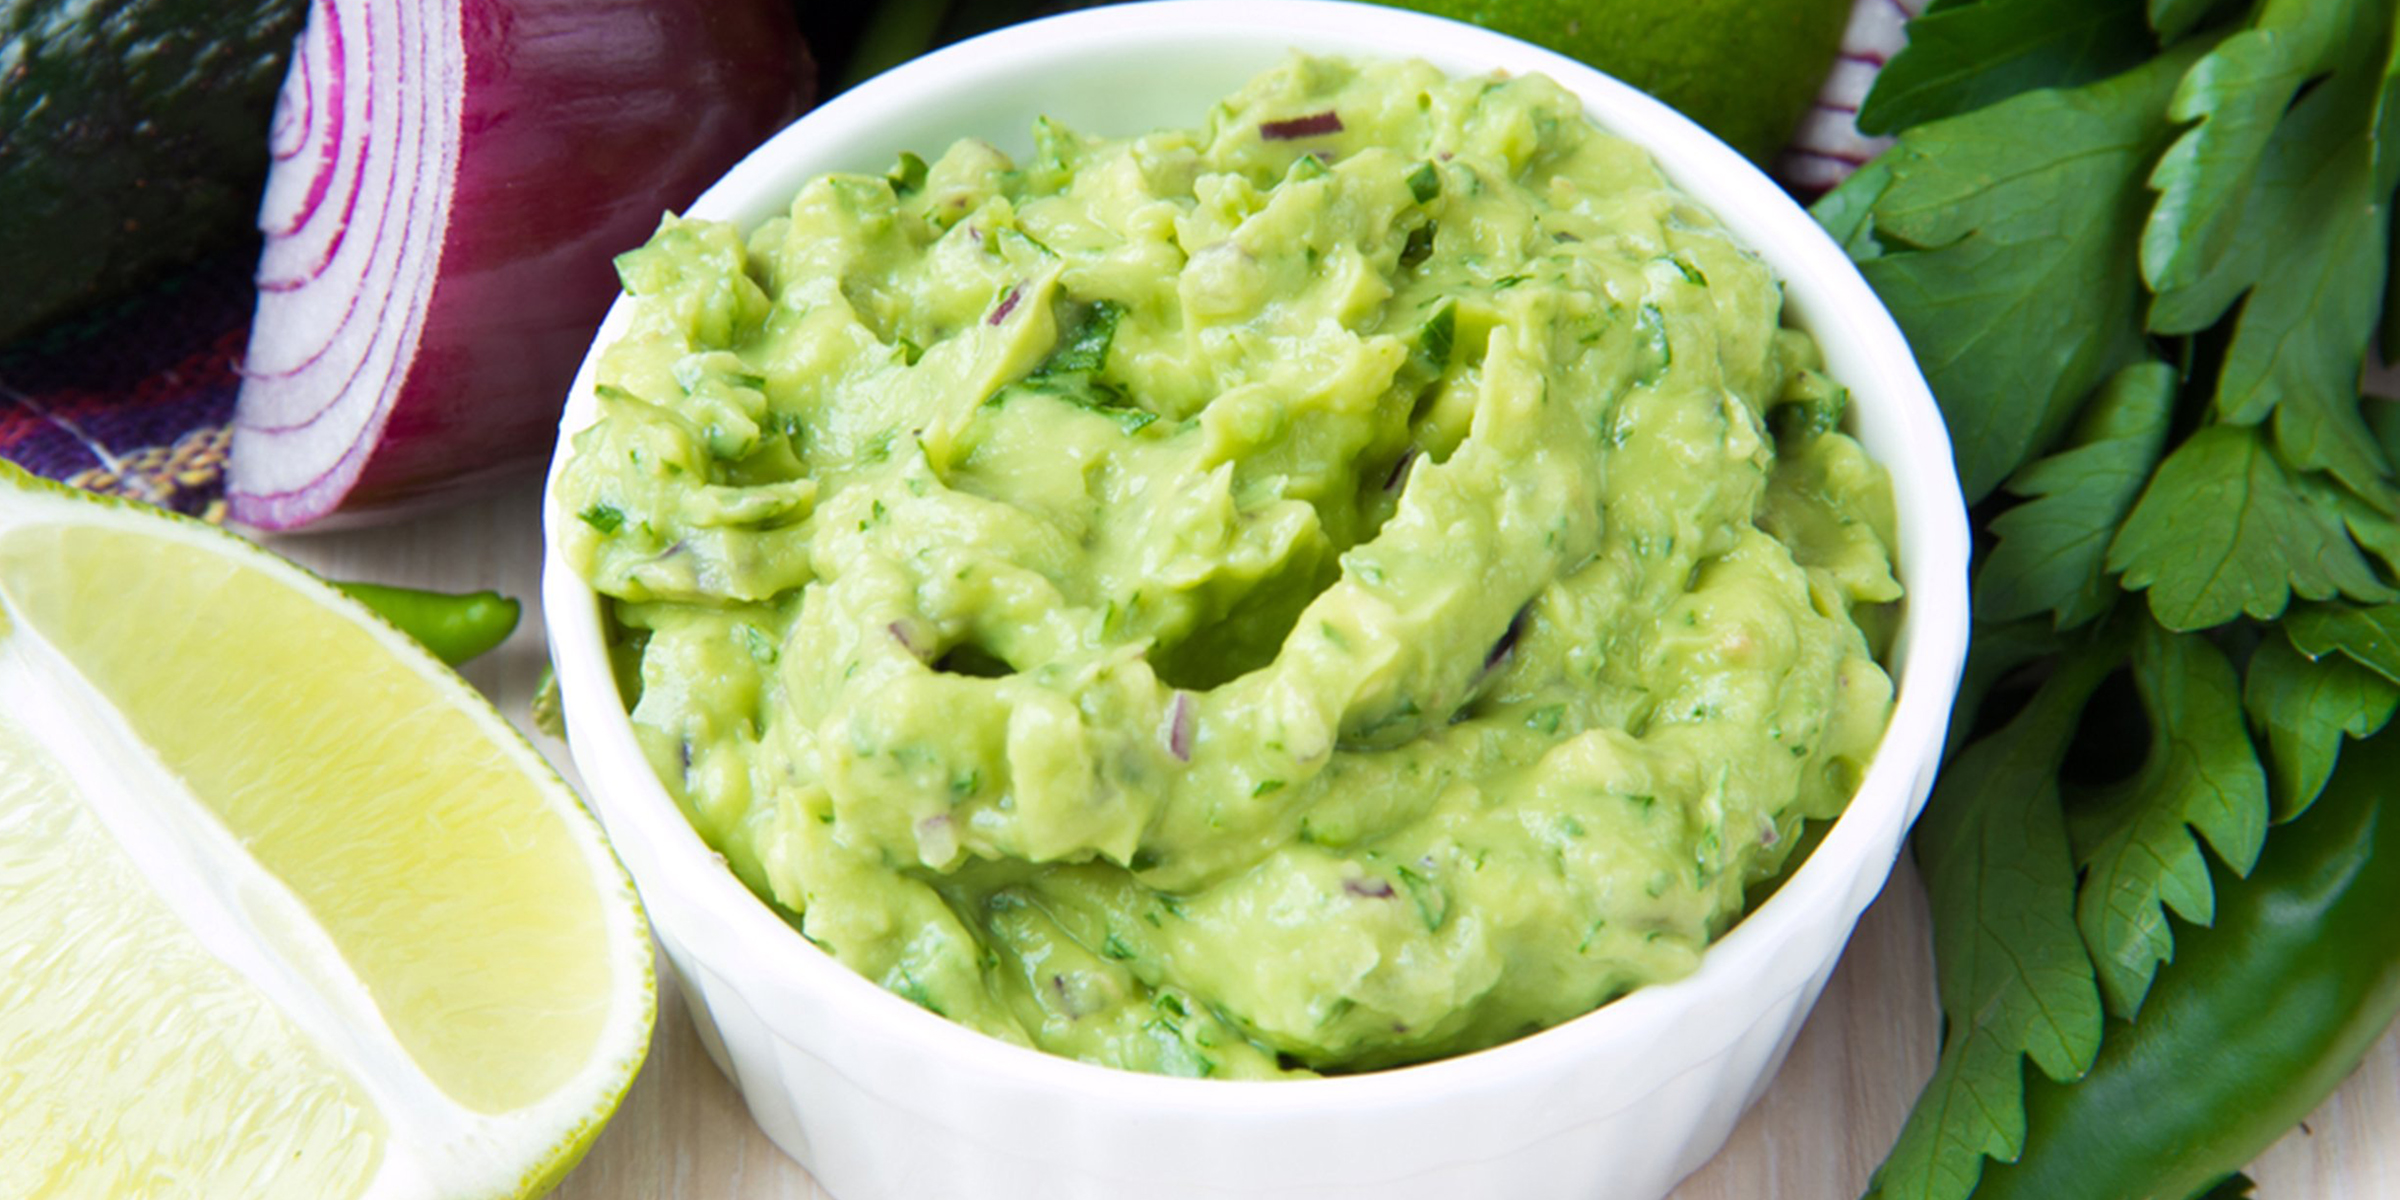 Is avocado good when trying to lose weight